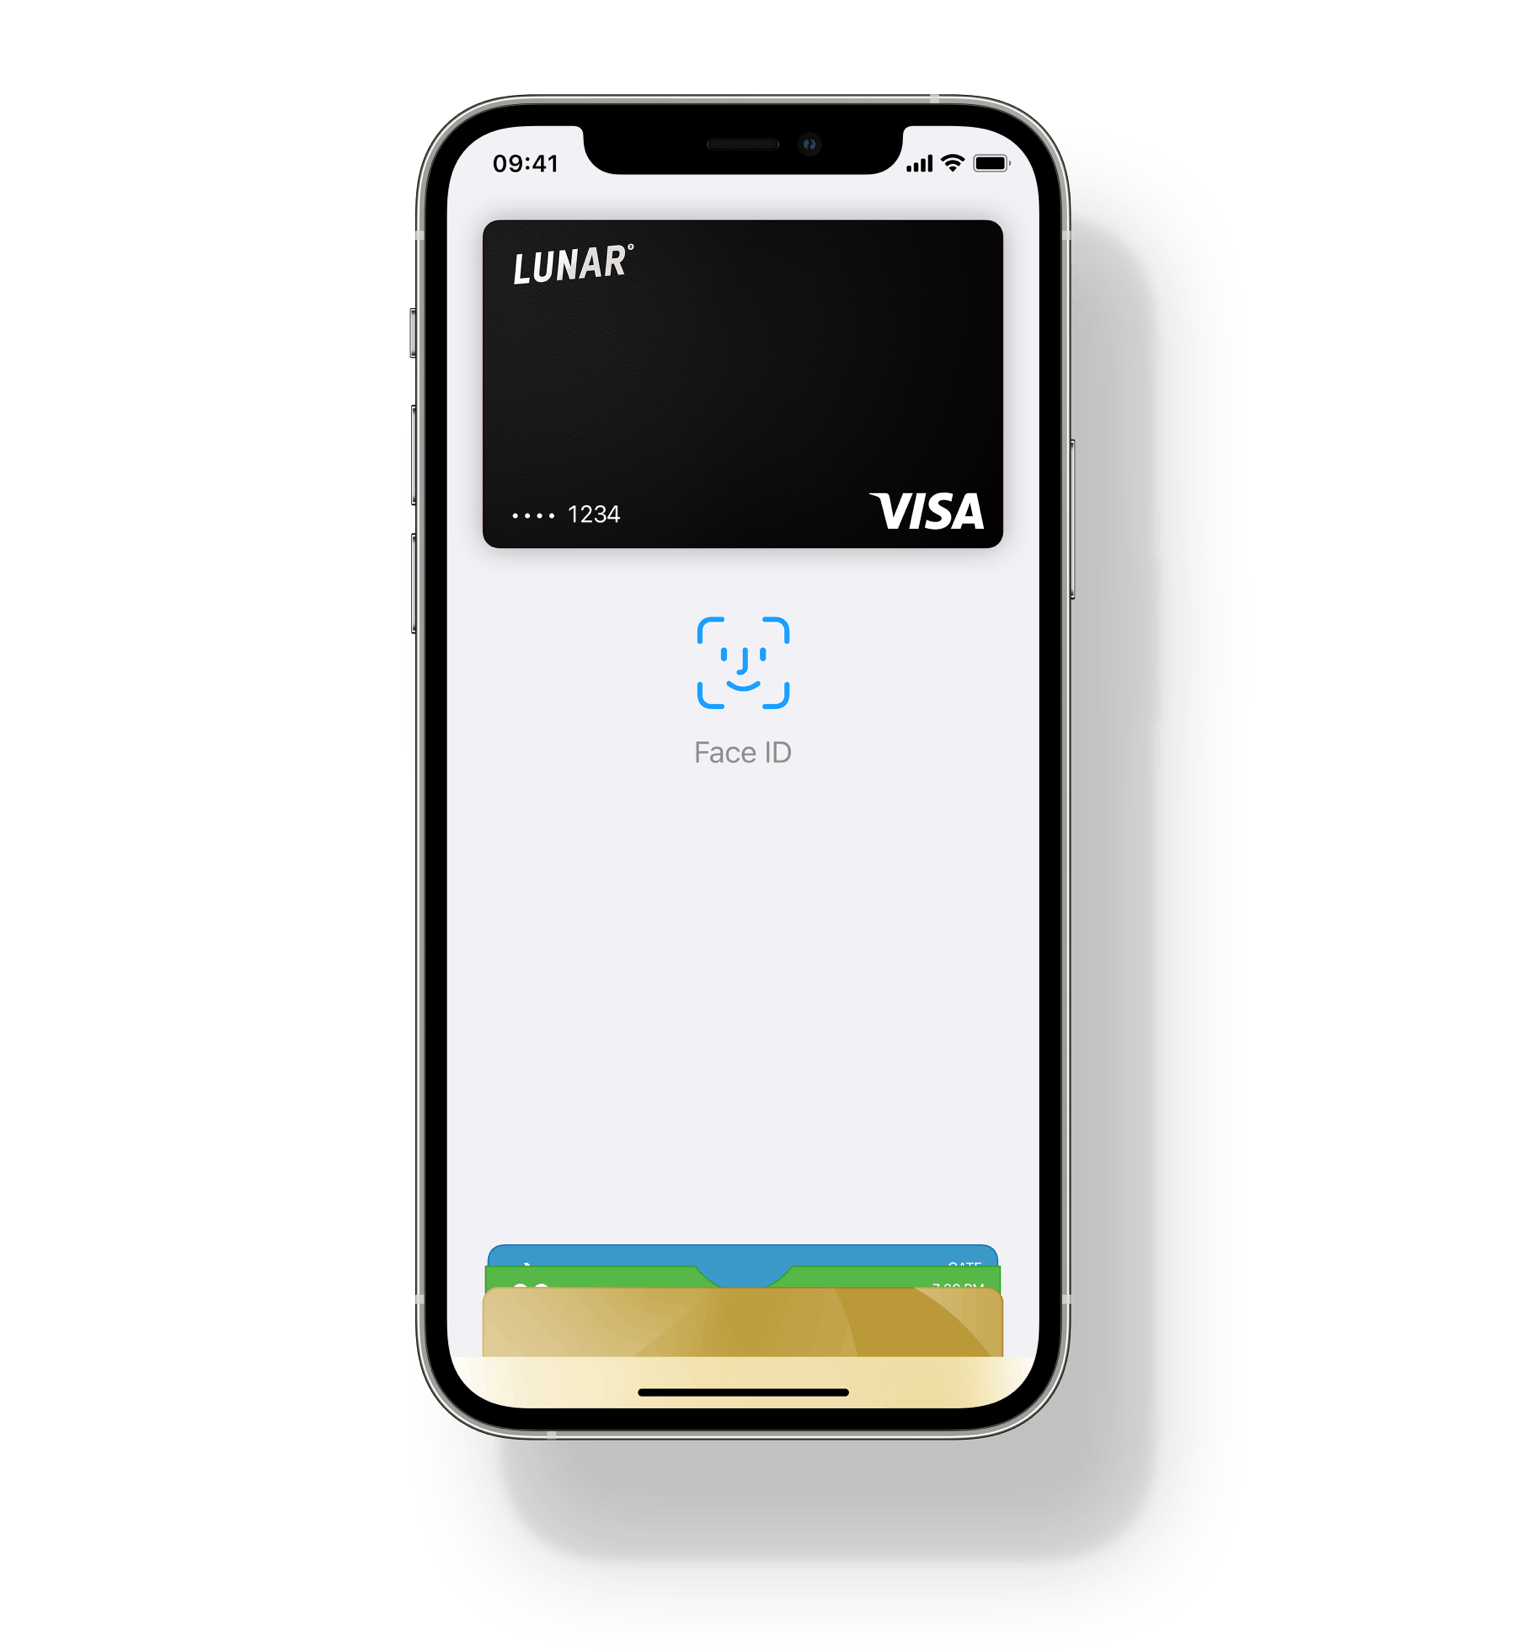 Add your Lunar card to Apple Pay